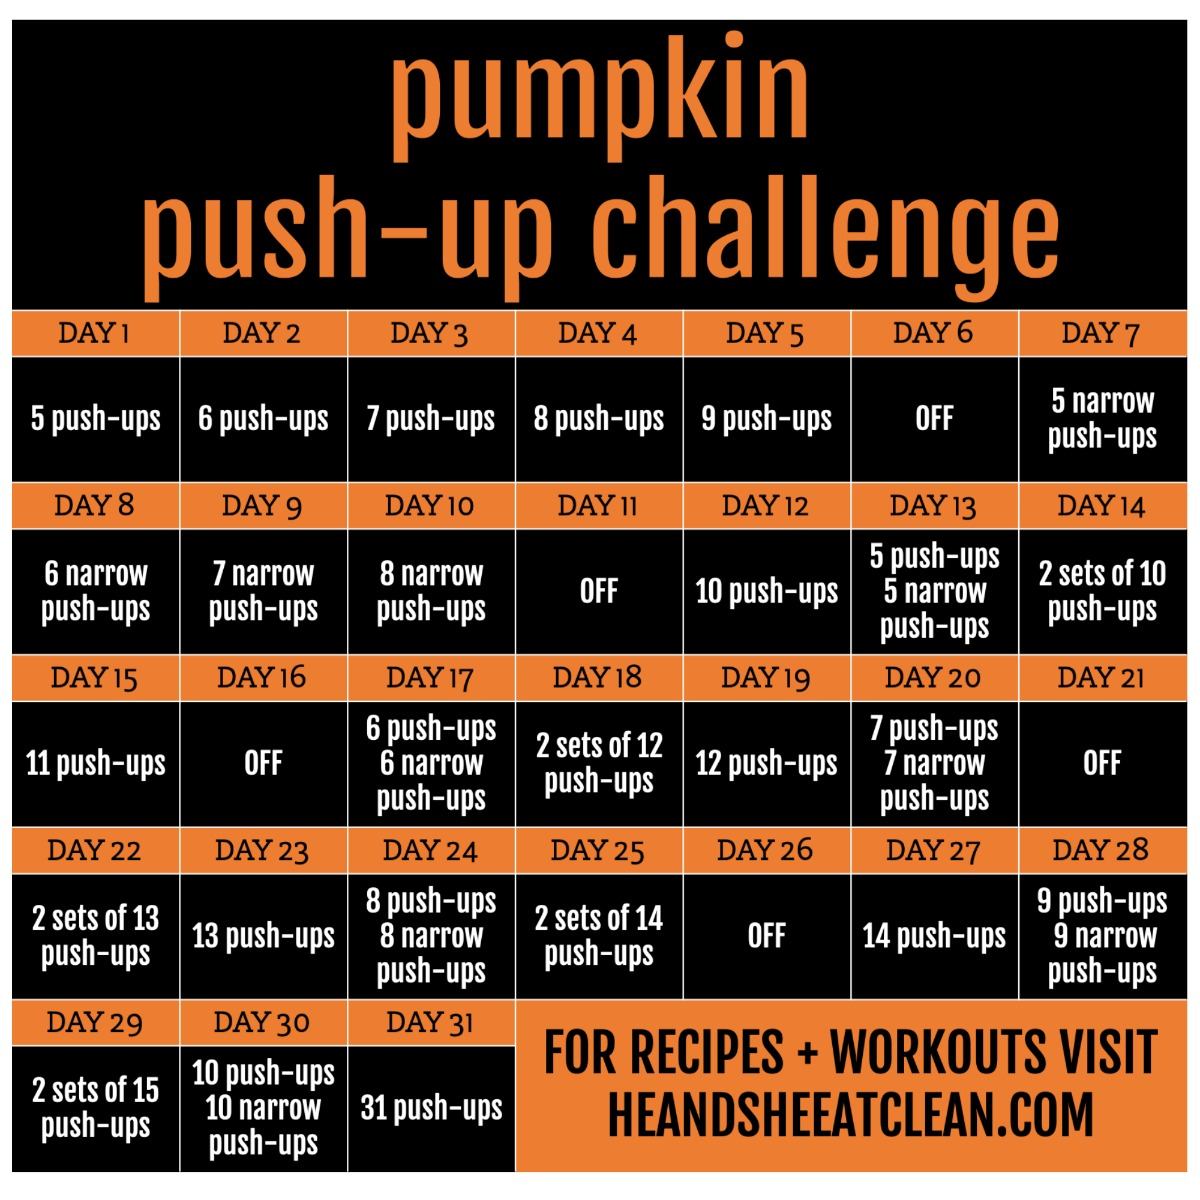 fitness challenge calendar with 31 days of push-ups listed